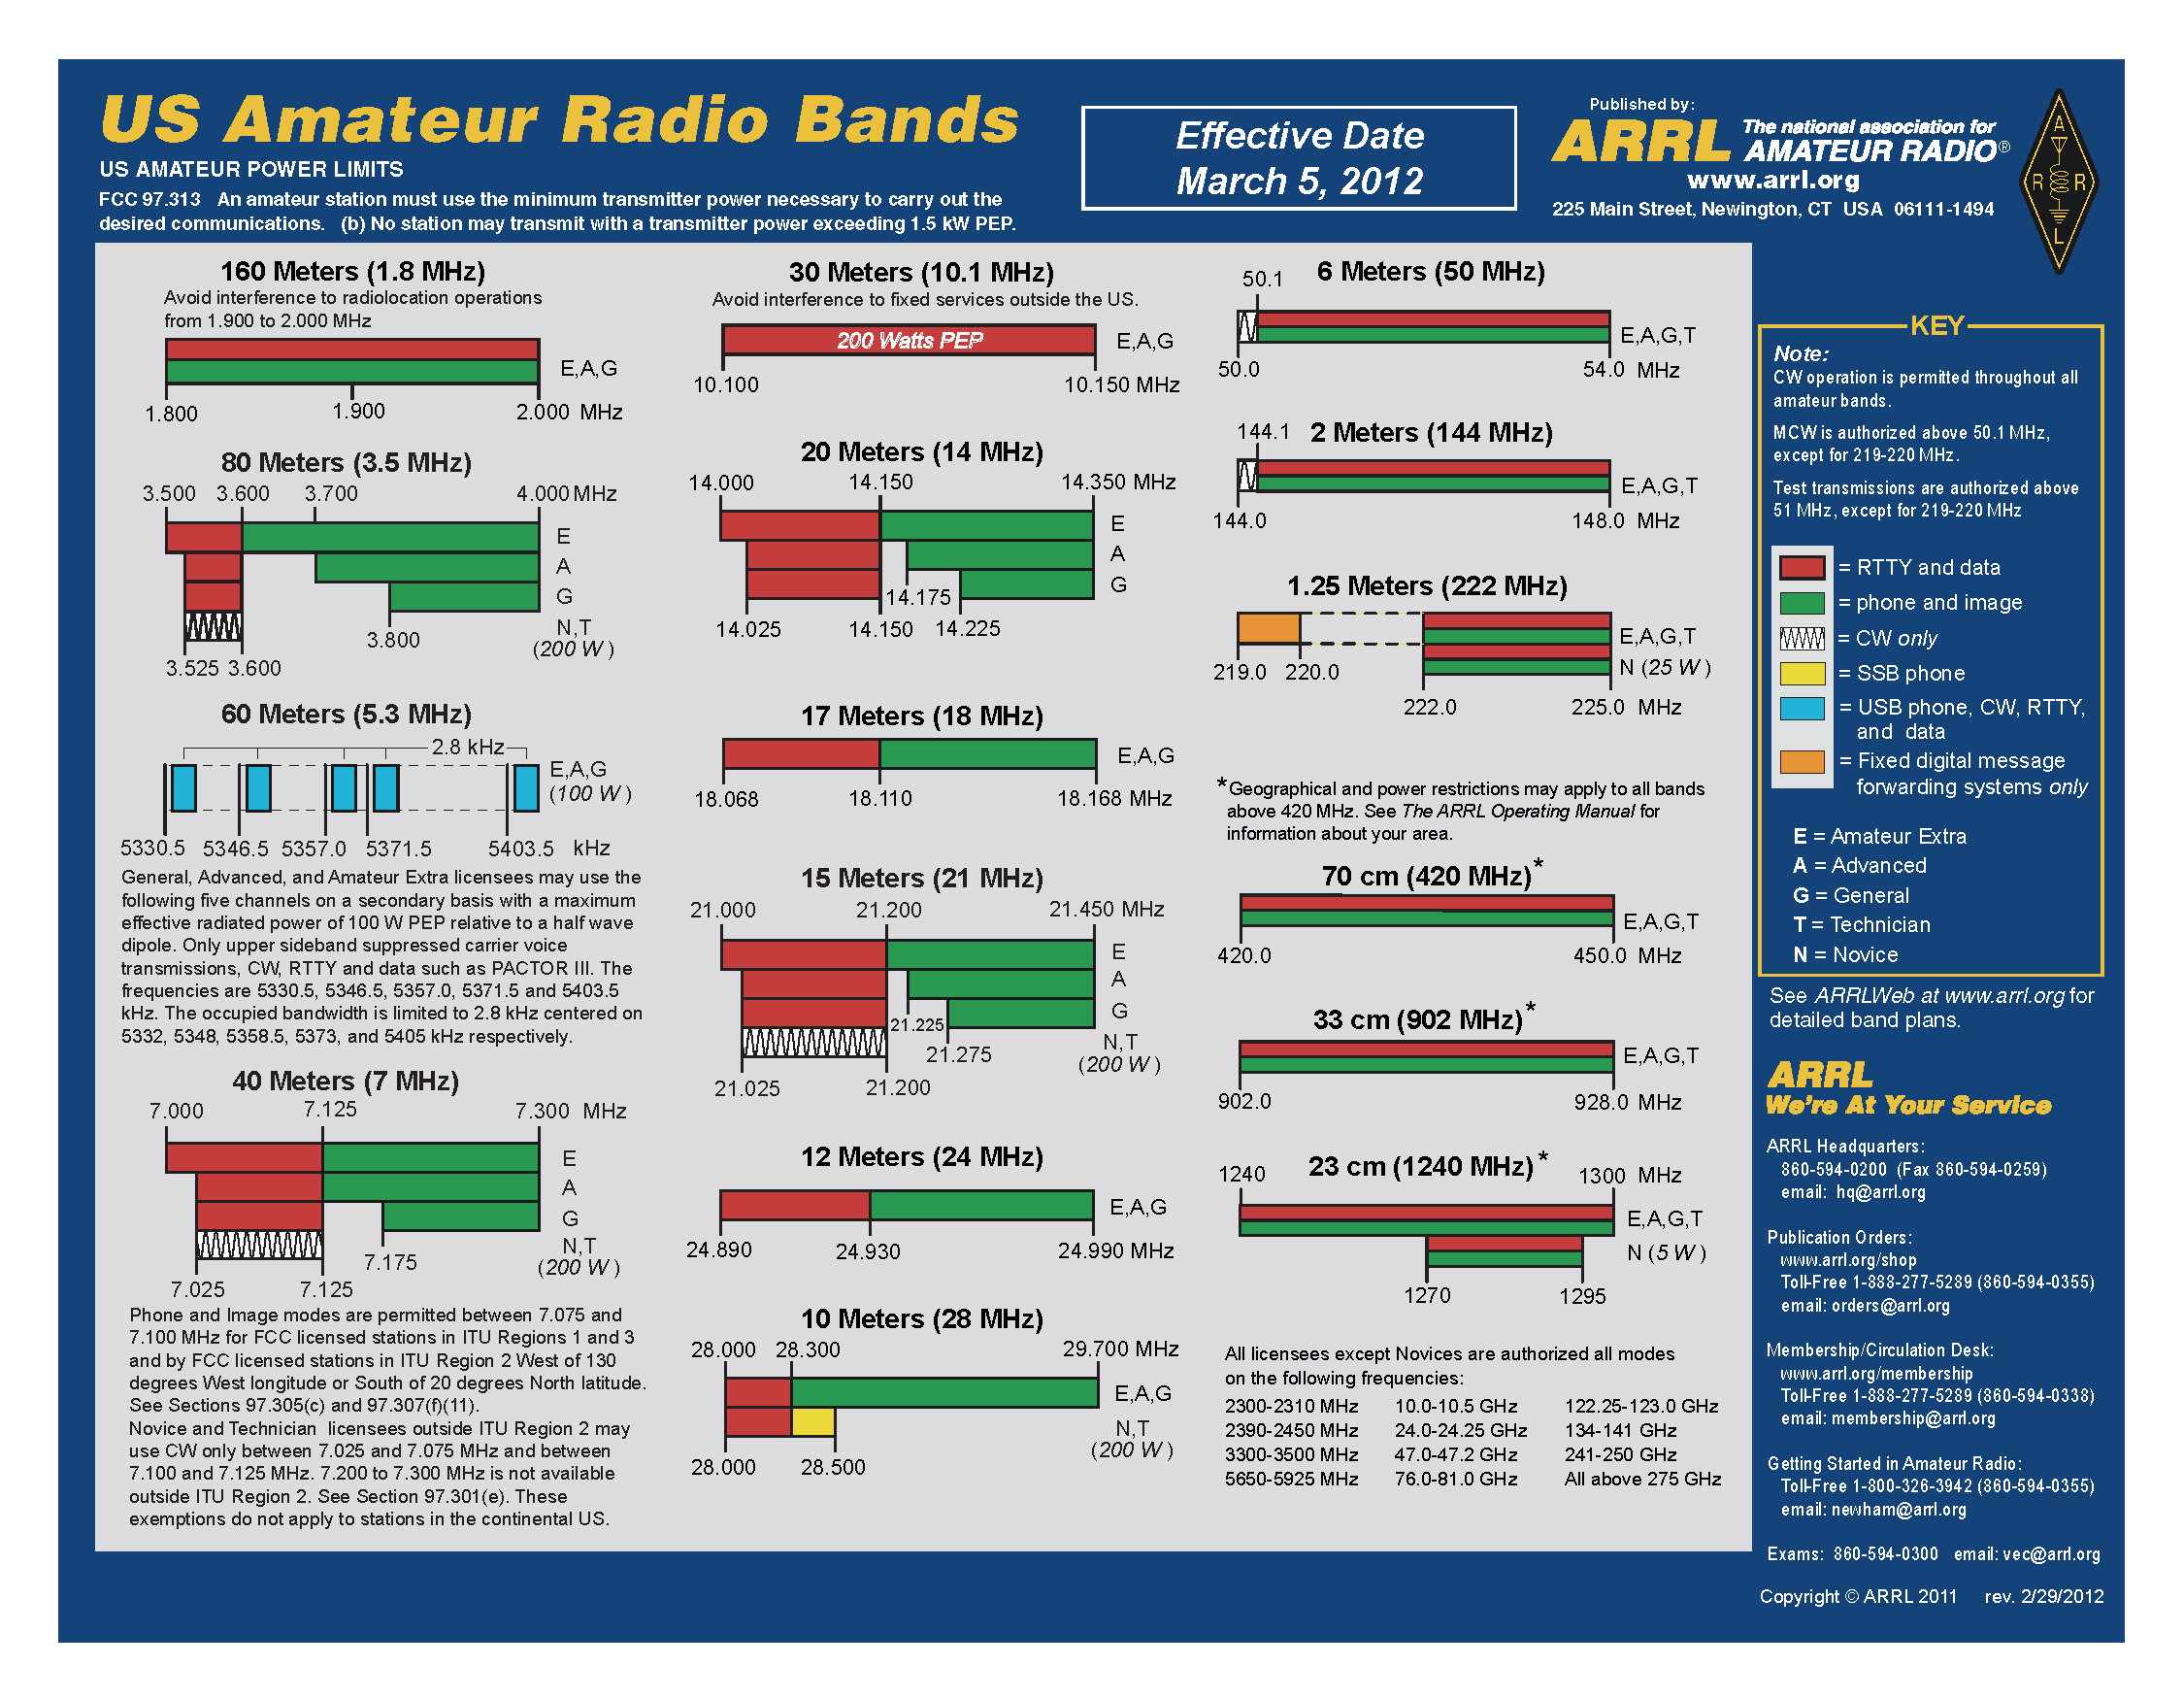 have of bands pin band as chart ham what technician this shows lot newly access to class a stuff licensed legal you fun charts radio alphabet